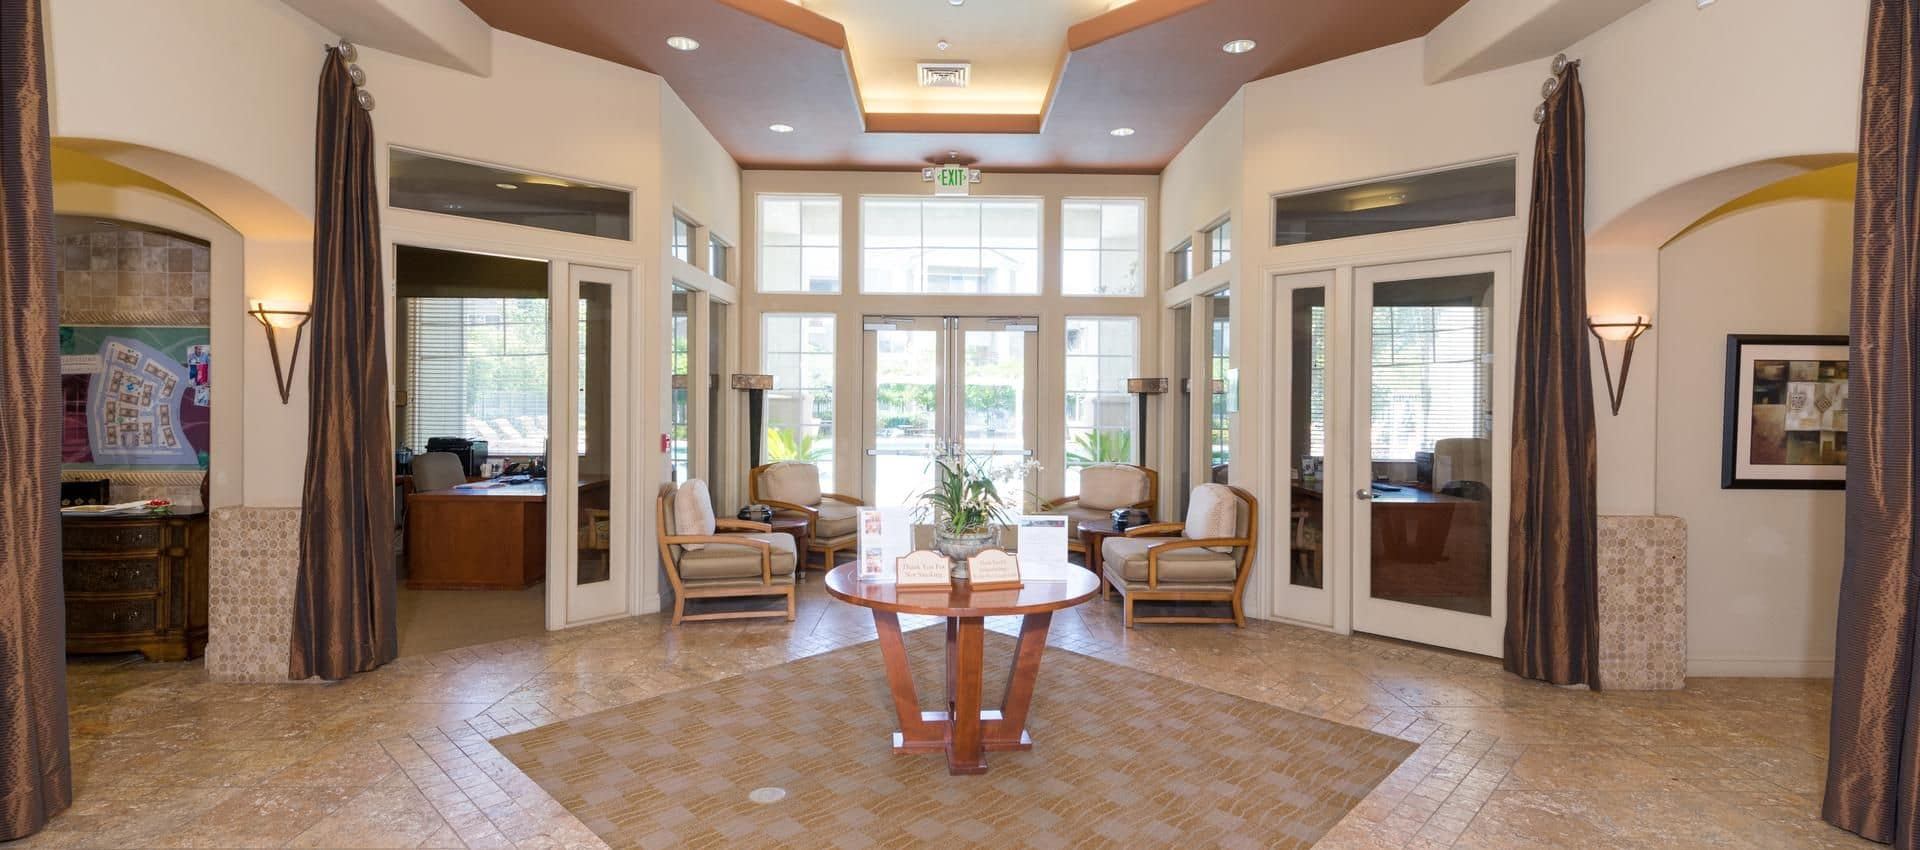 The Artisan Apartment Homes's Clubhouse Lobby in Sacramento, CA